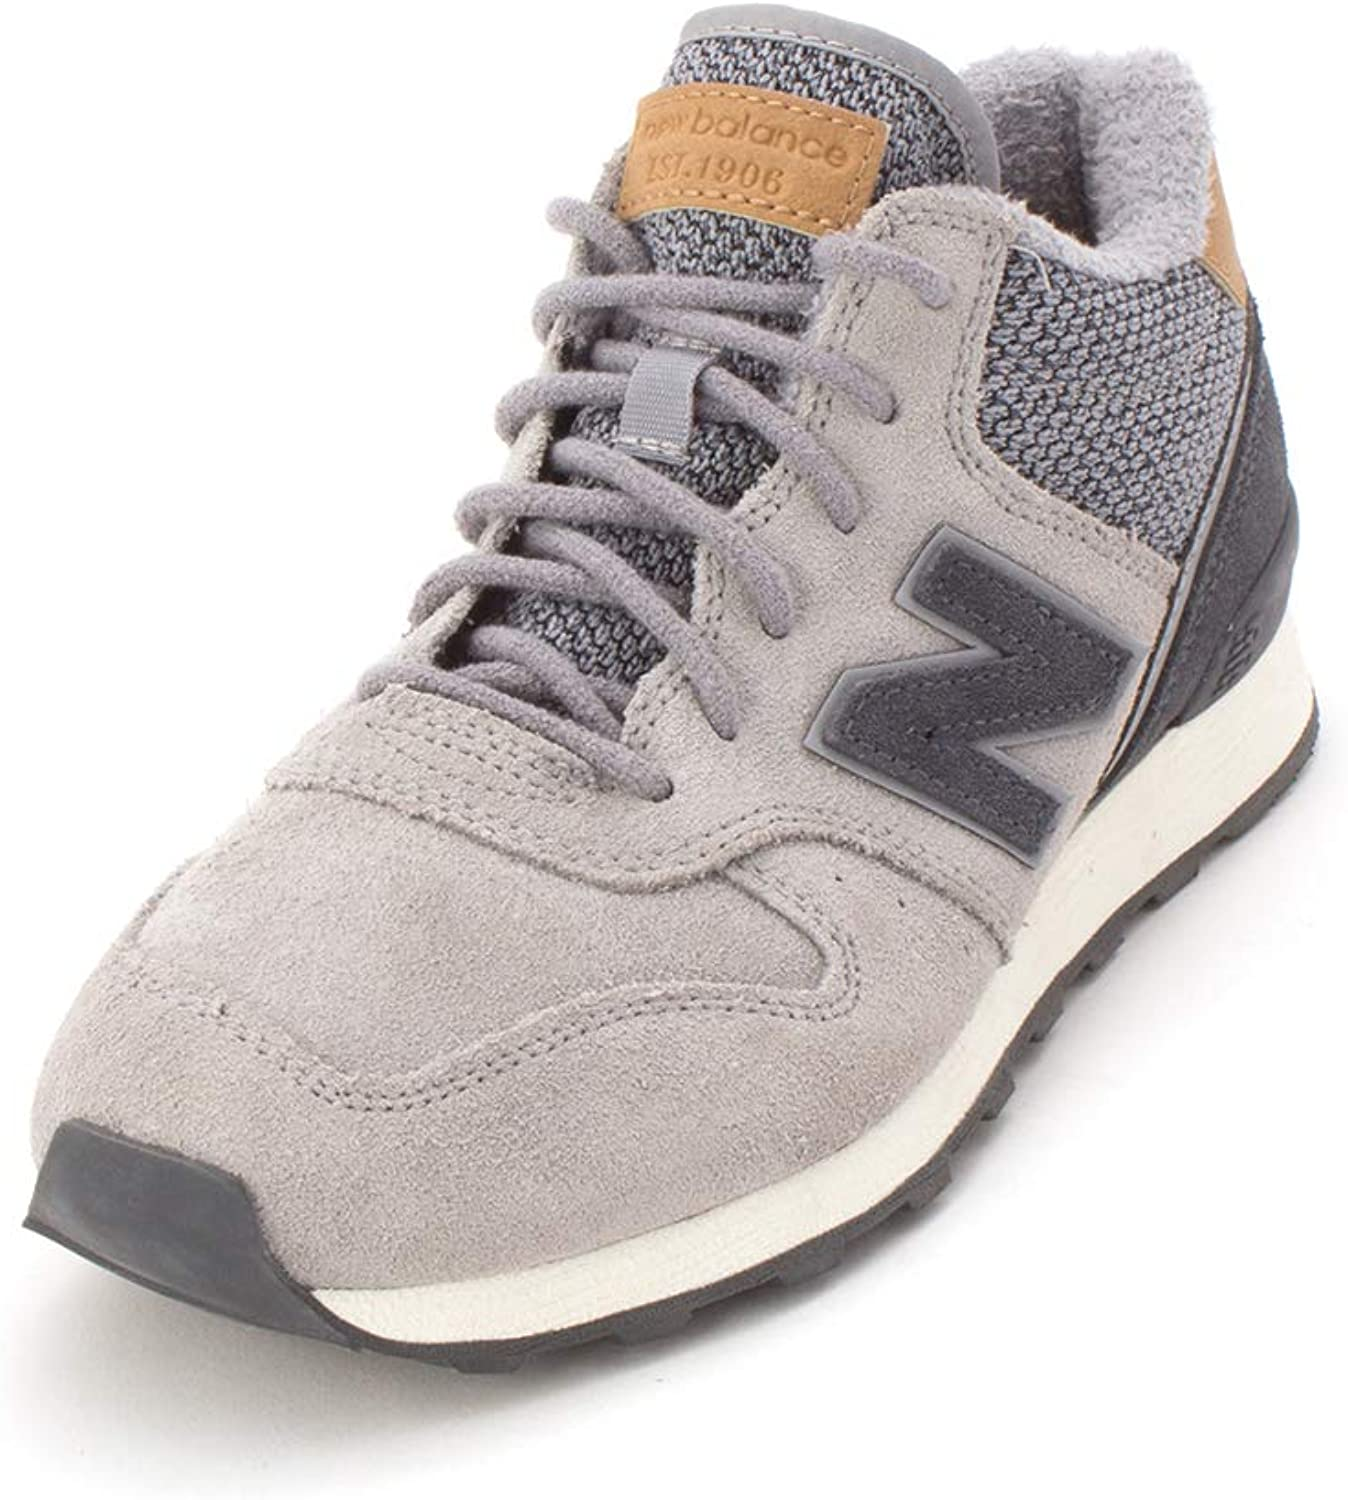 New Balance Mens Mt00bk Low Top Lace Up Running Sneaker